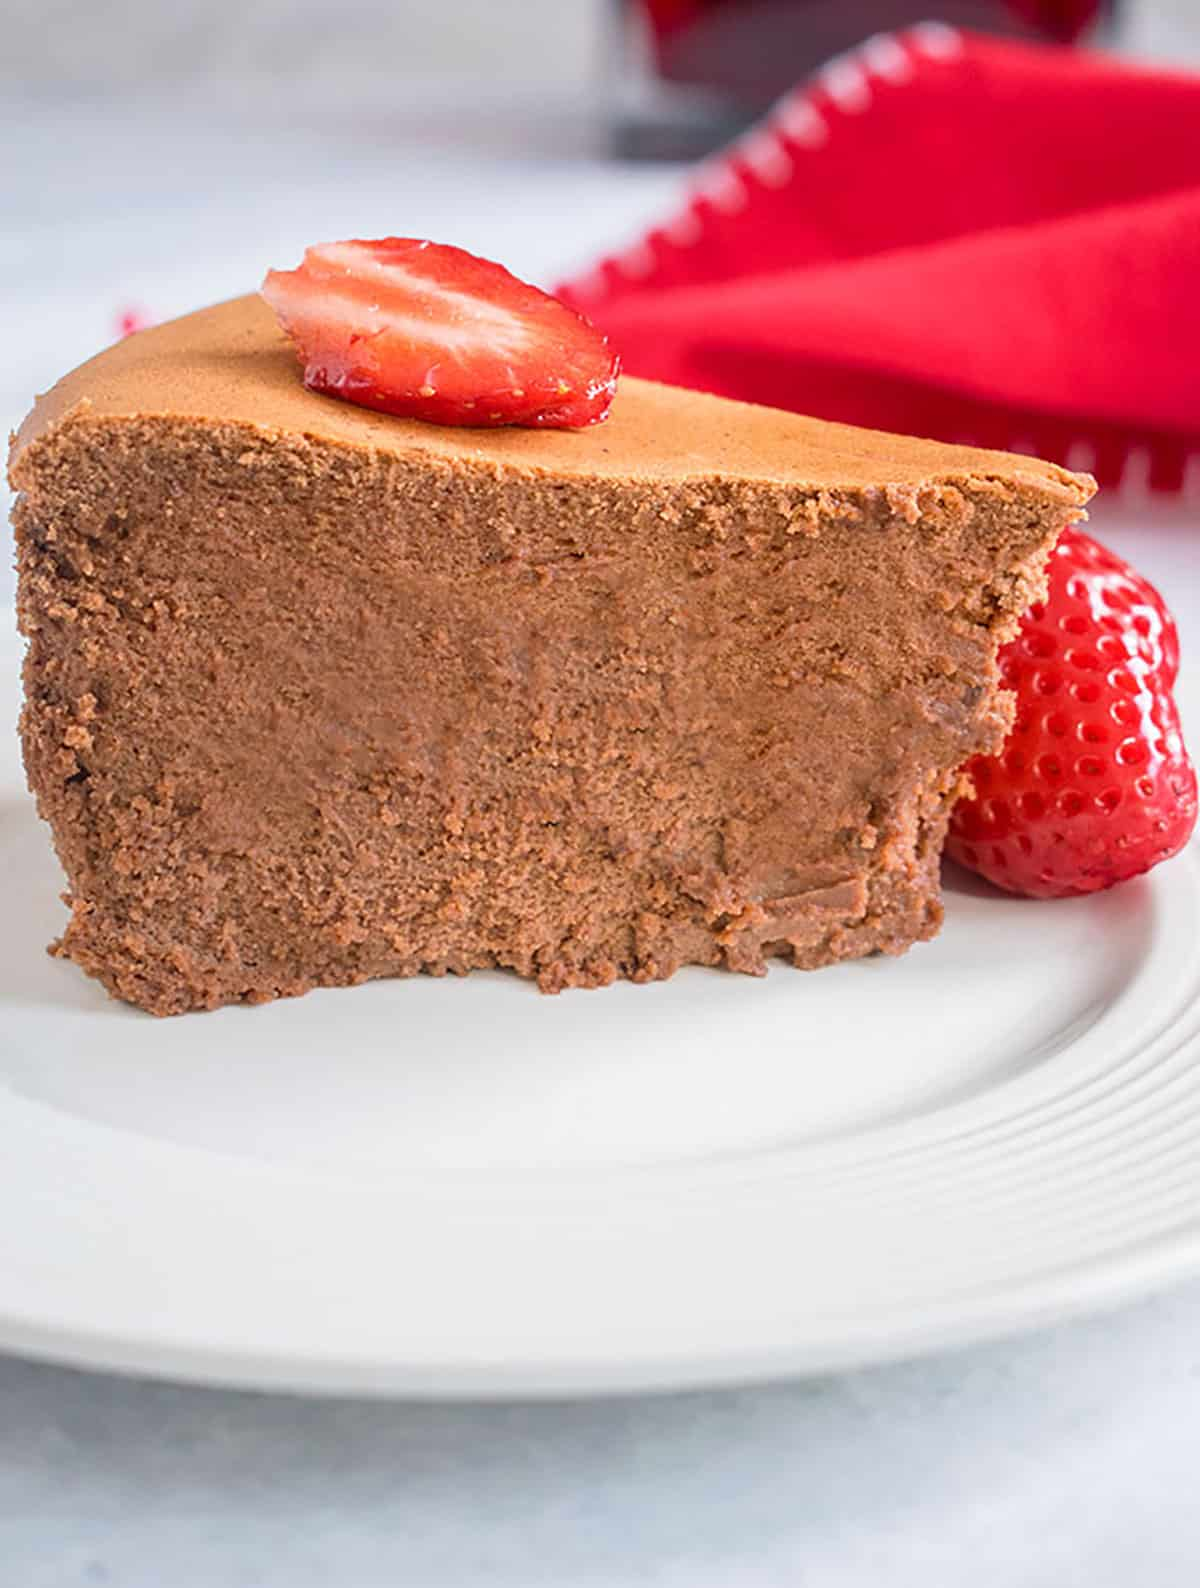 tall slice of chocolate cheesecake with strawberries